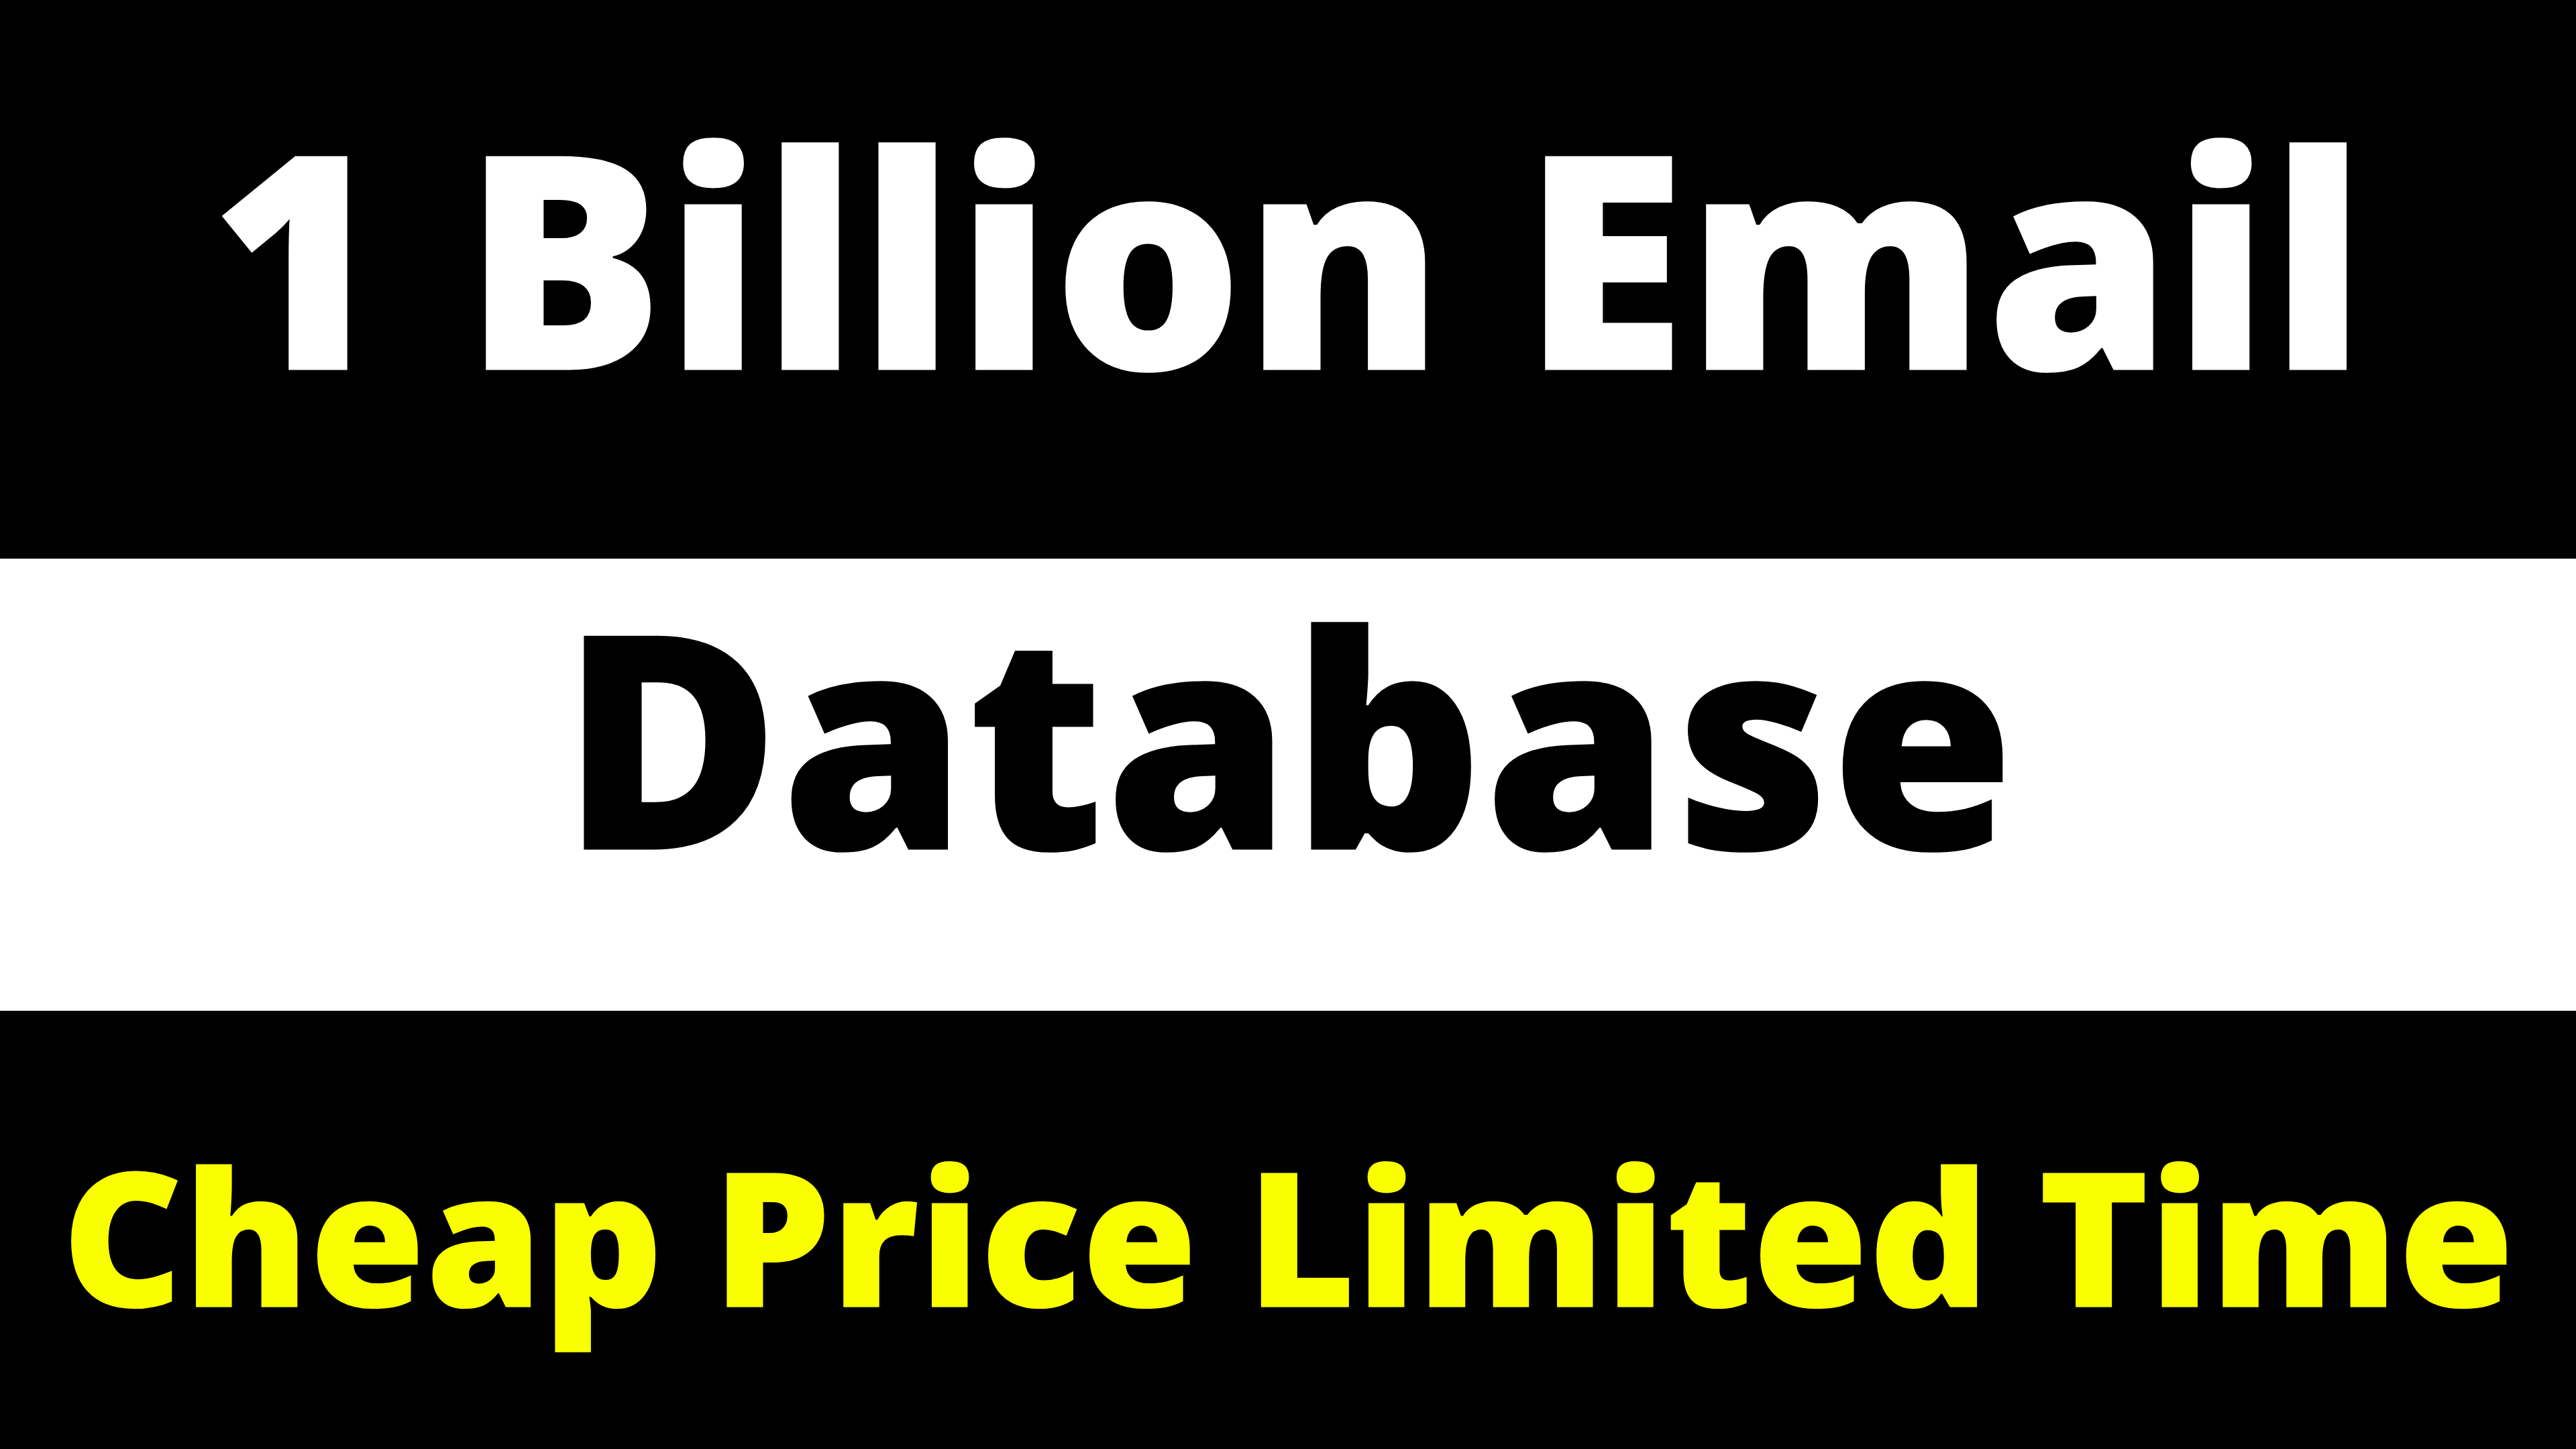 1 Billion Email Database Worldwide Cheap Price For Email Marketing